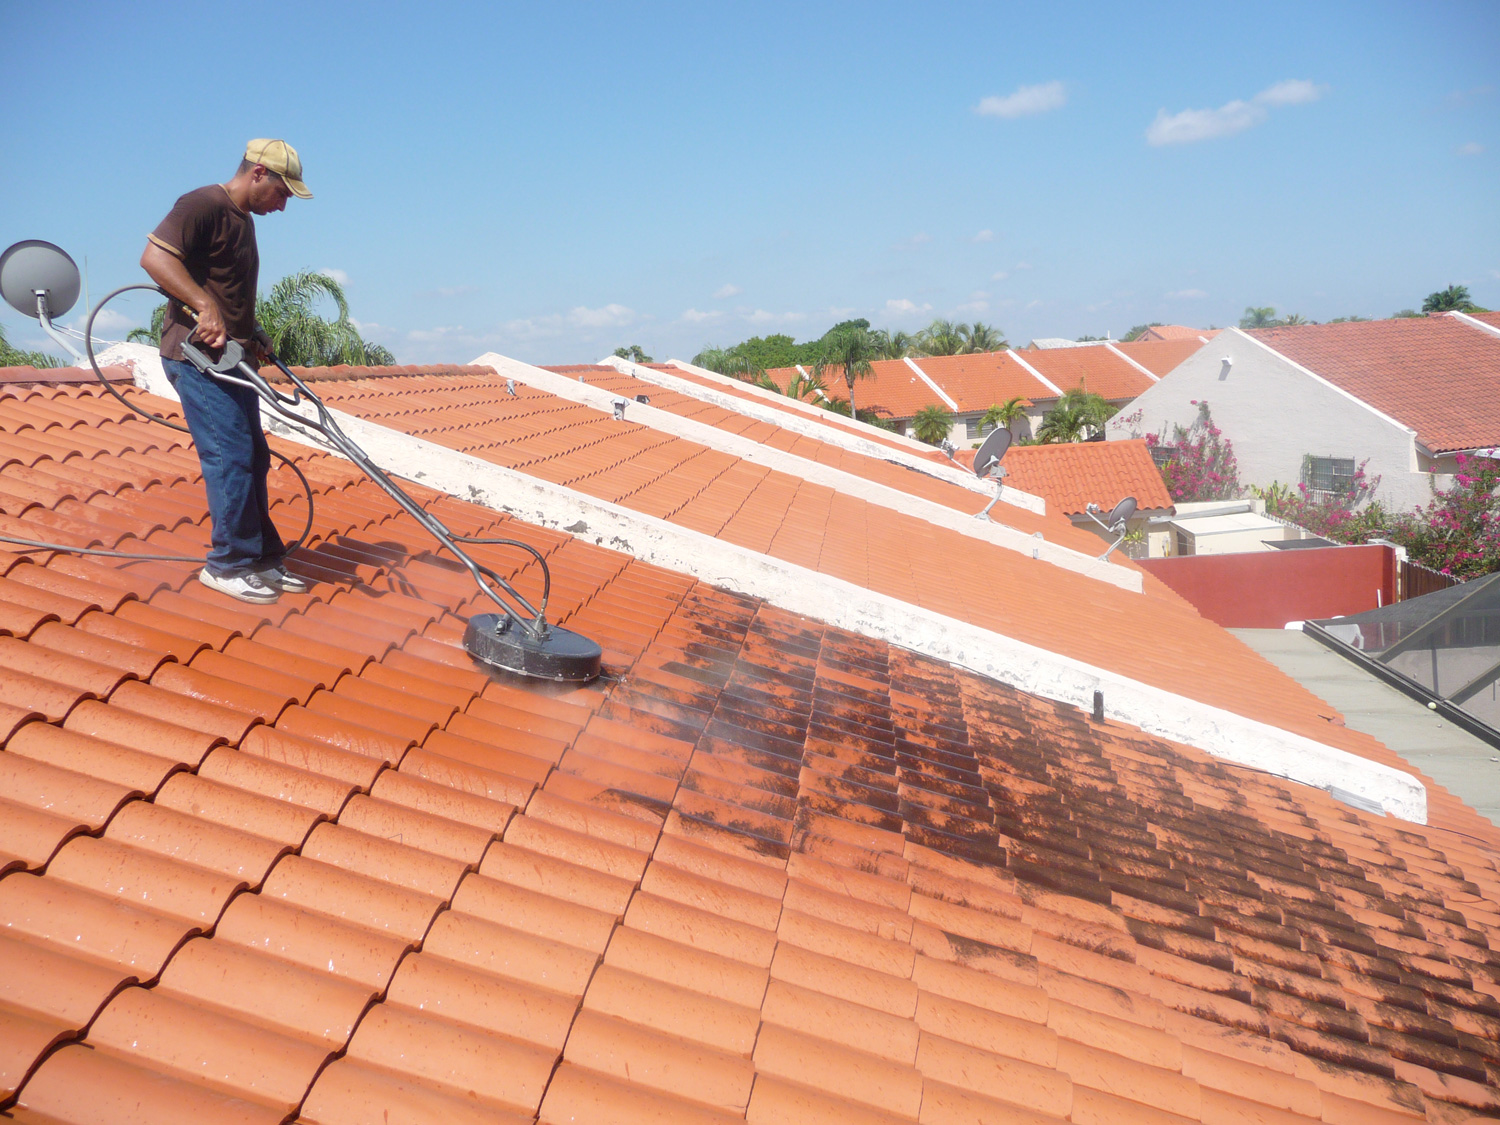 4 Reasons why You should get your Roof Cleaned  Ideas 4 Homes